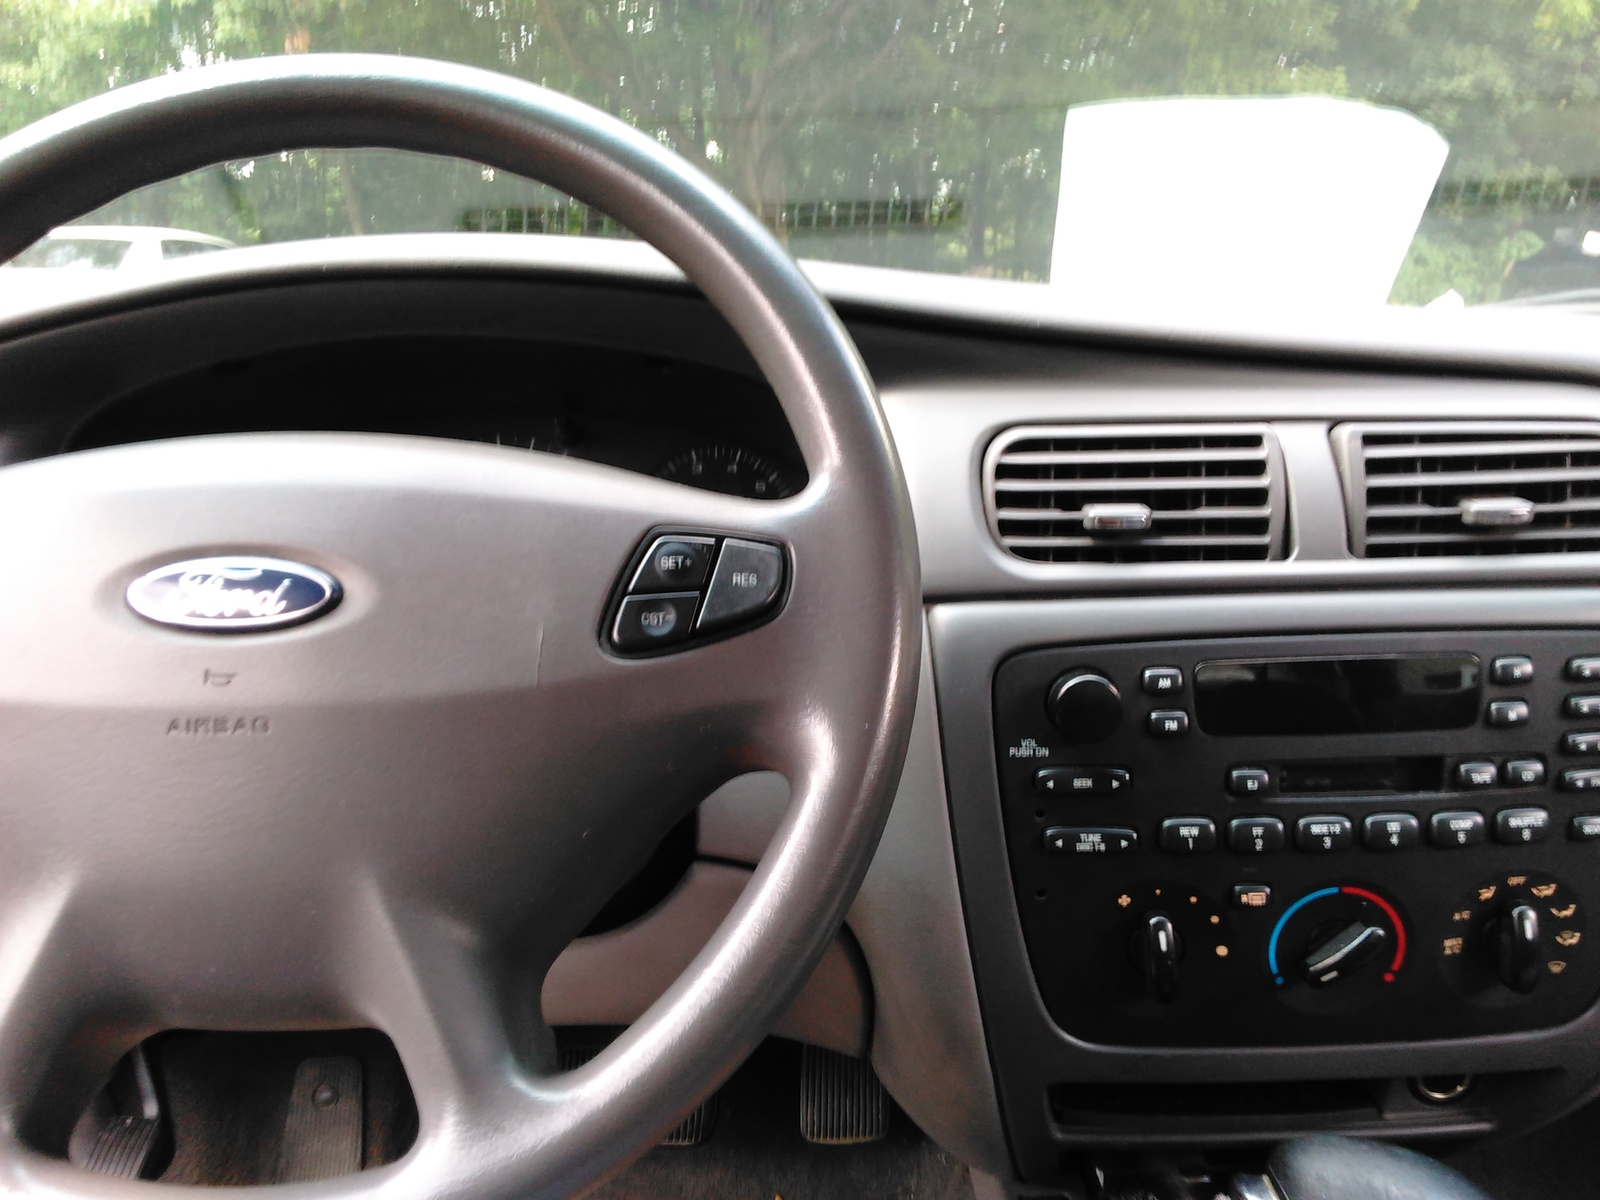 Ford Taurus Questions - Factory Theft System